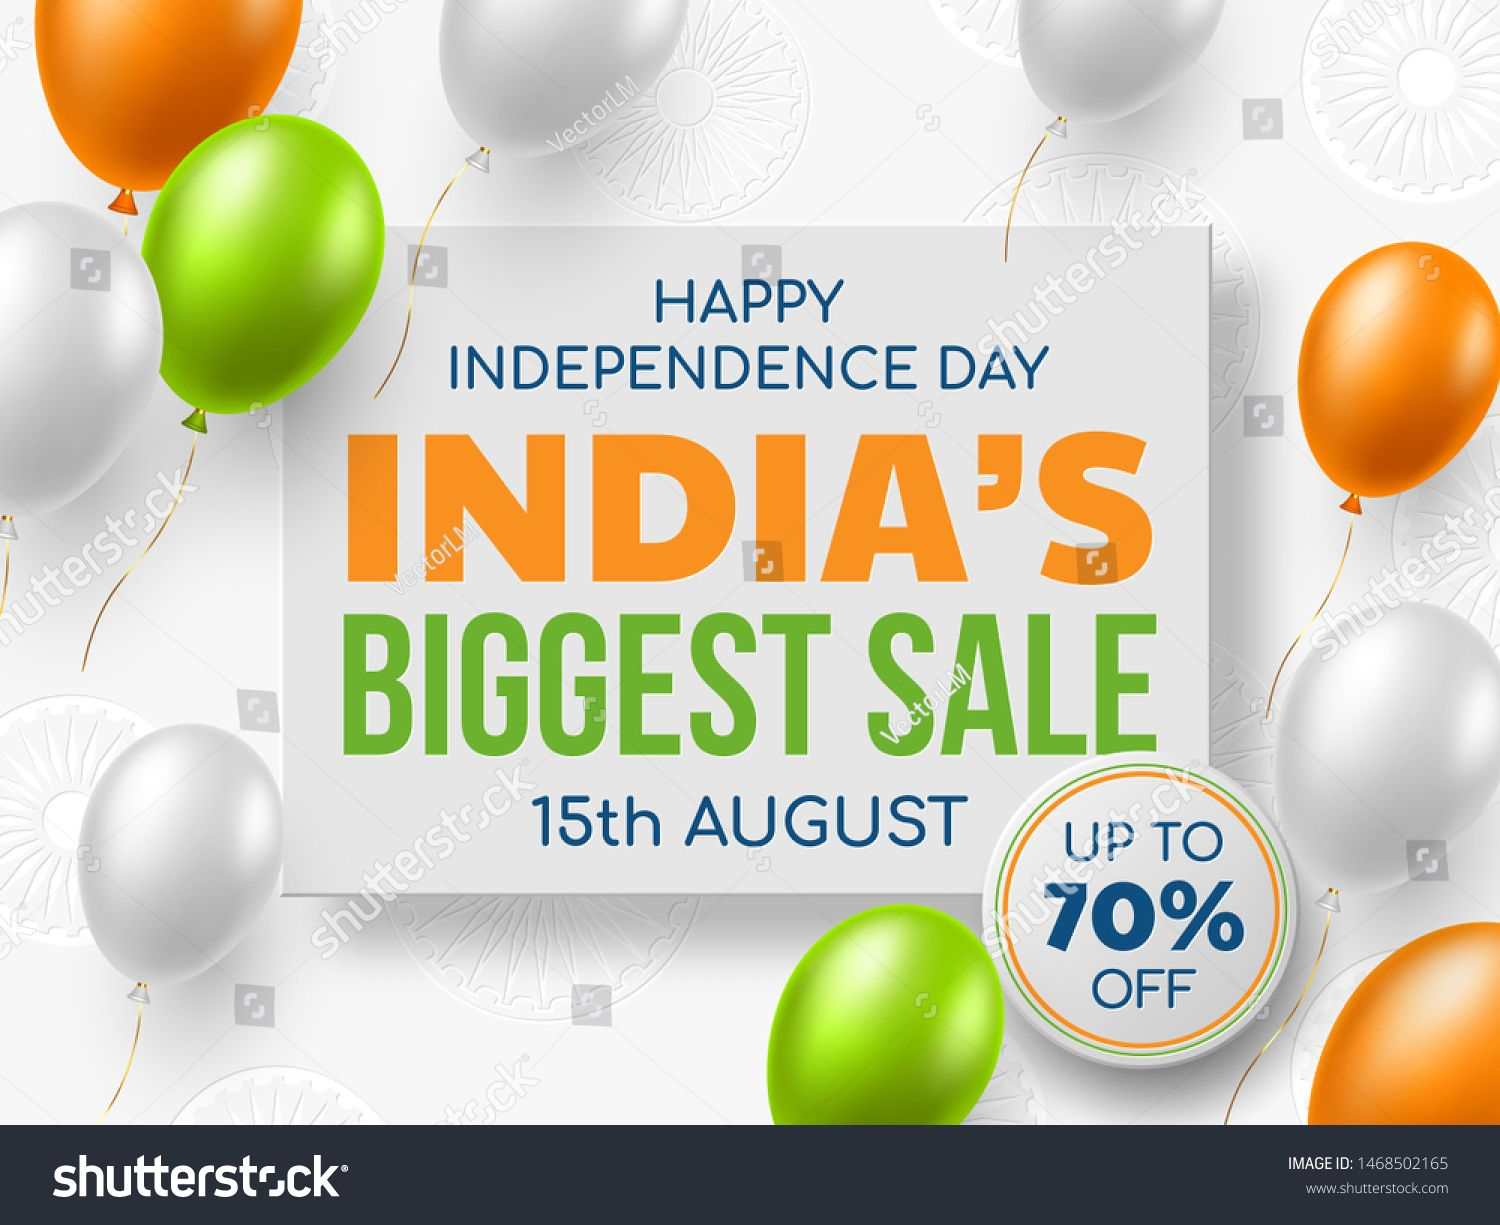 India Independence Day sale promotion banner or poster